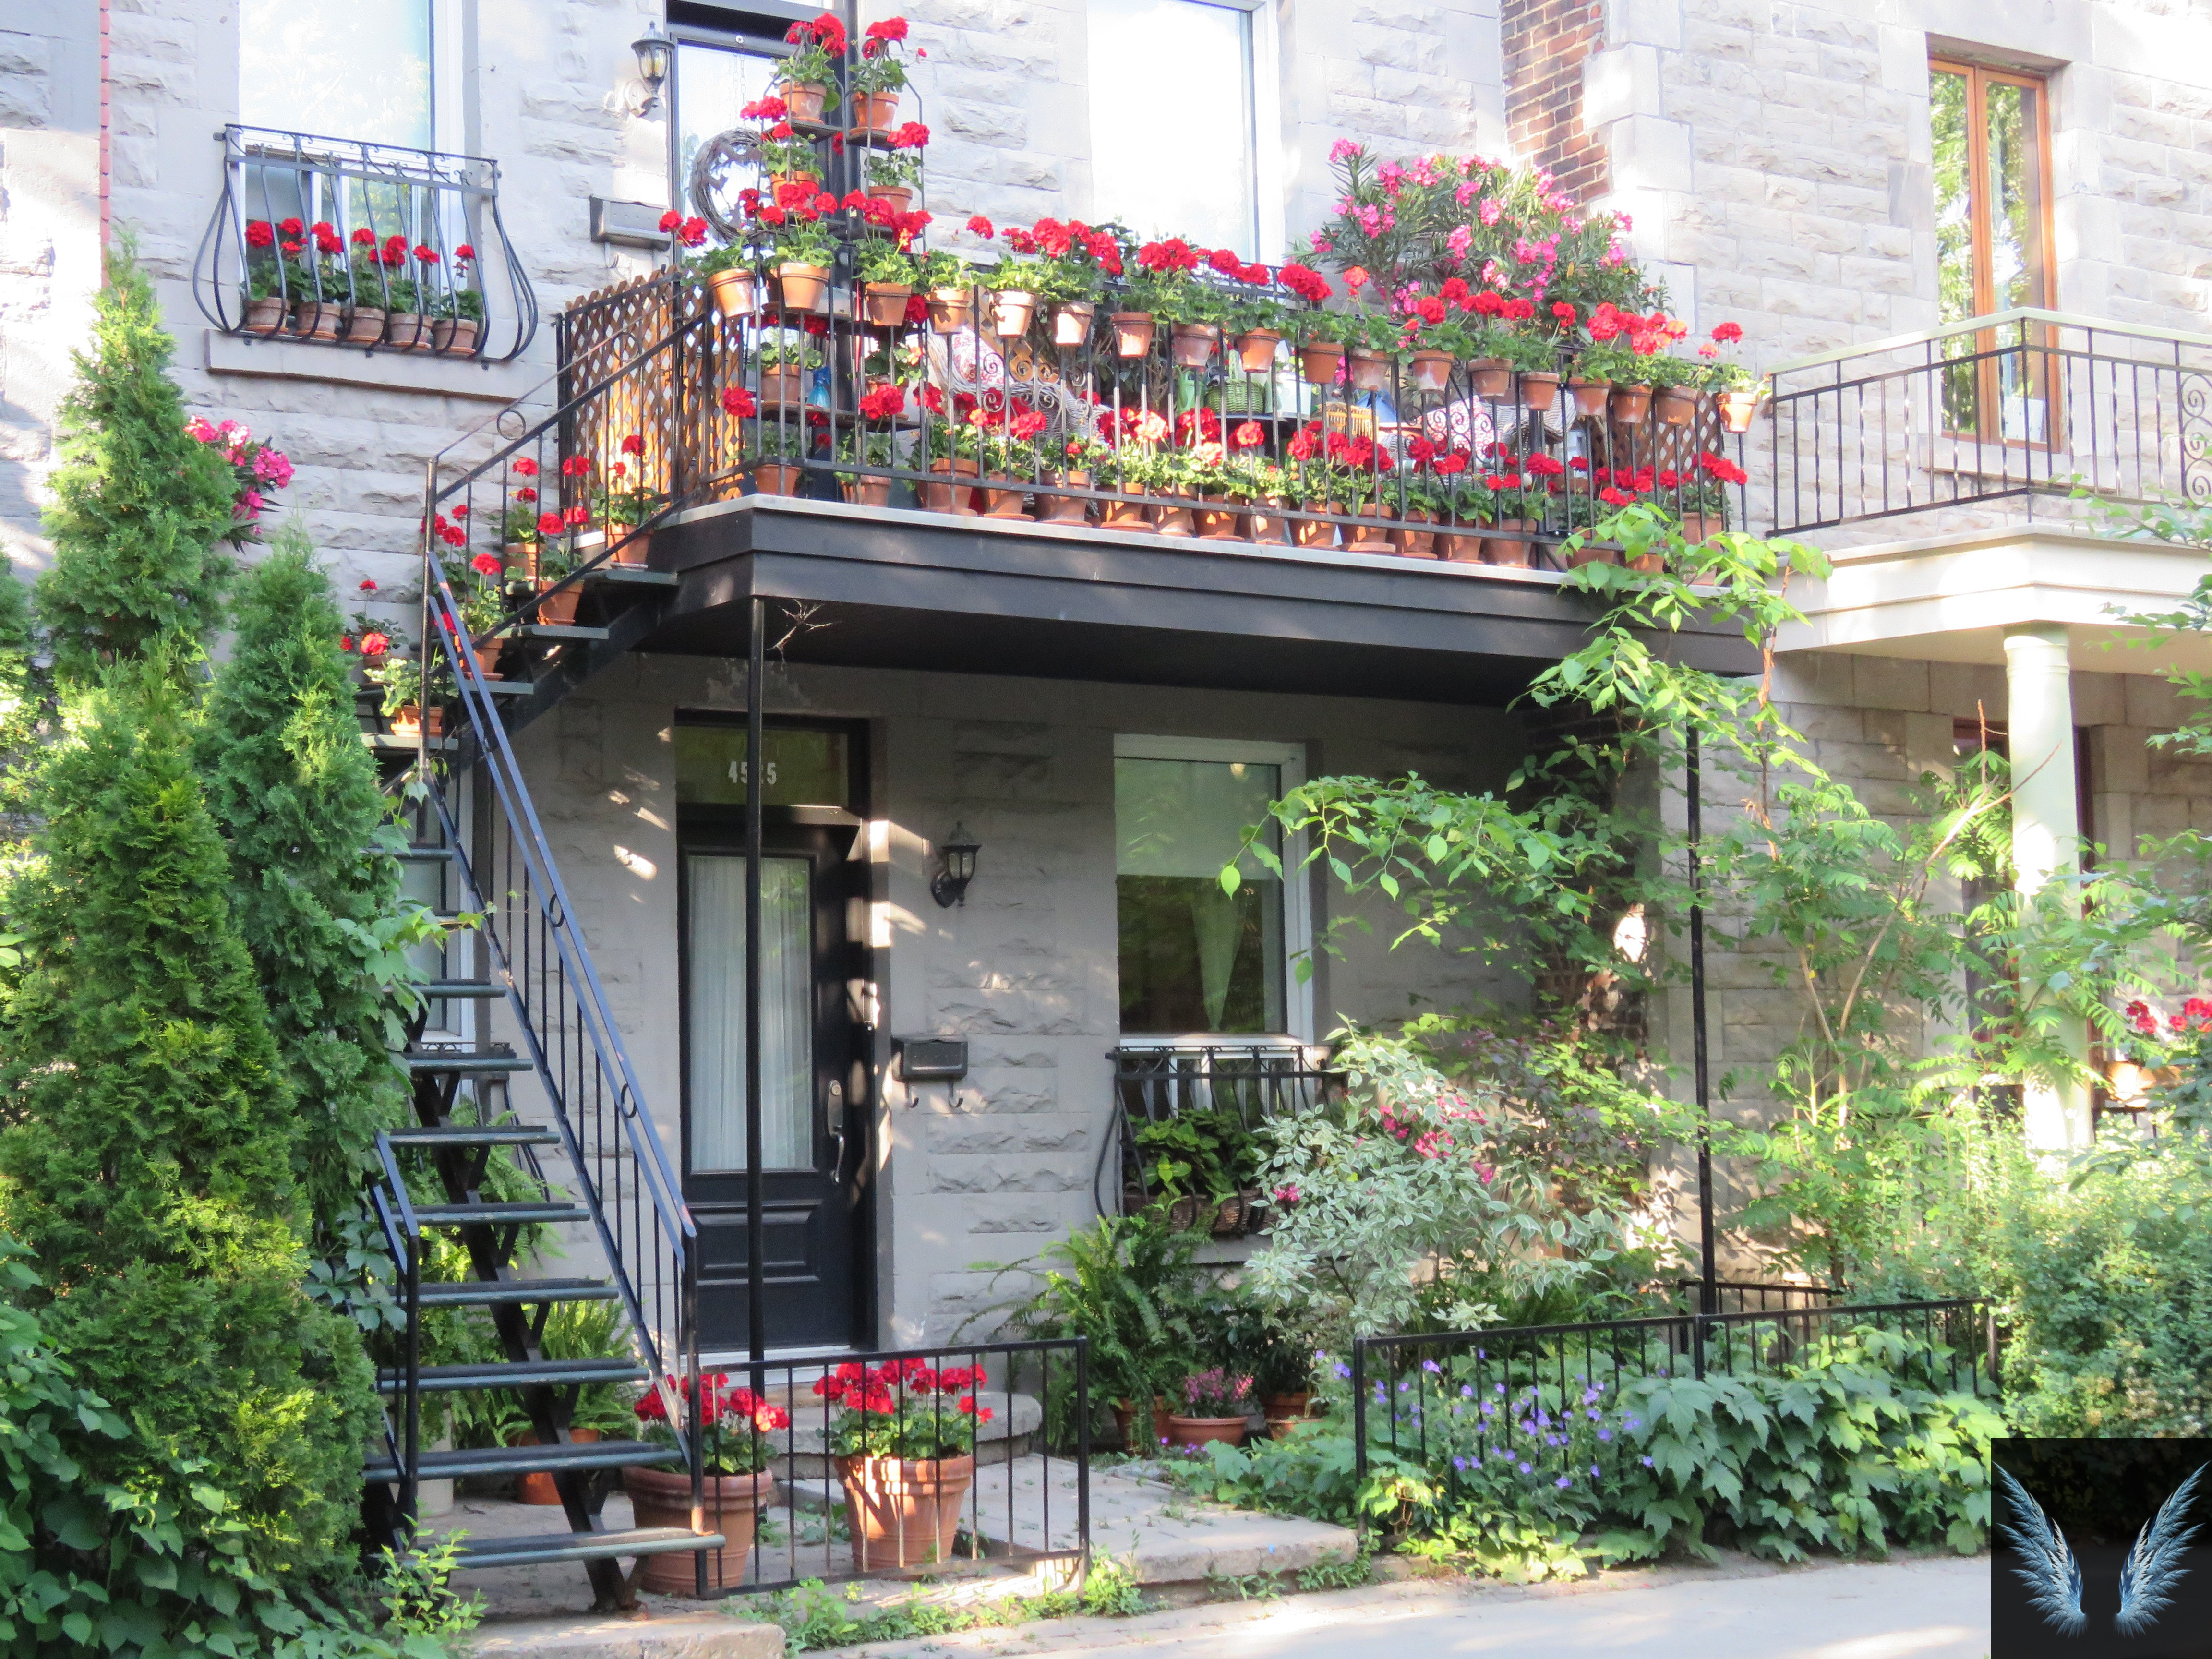 Surprising things about Montreal